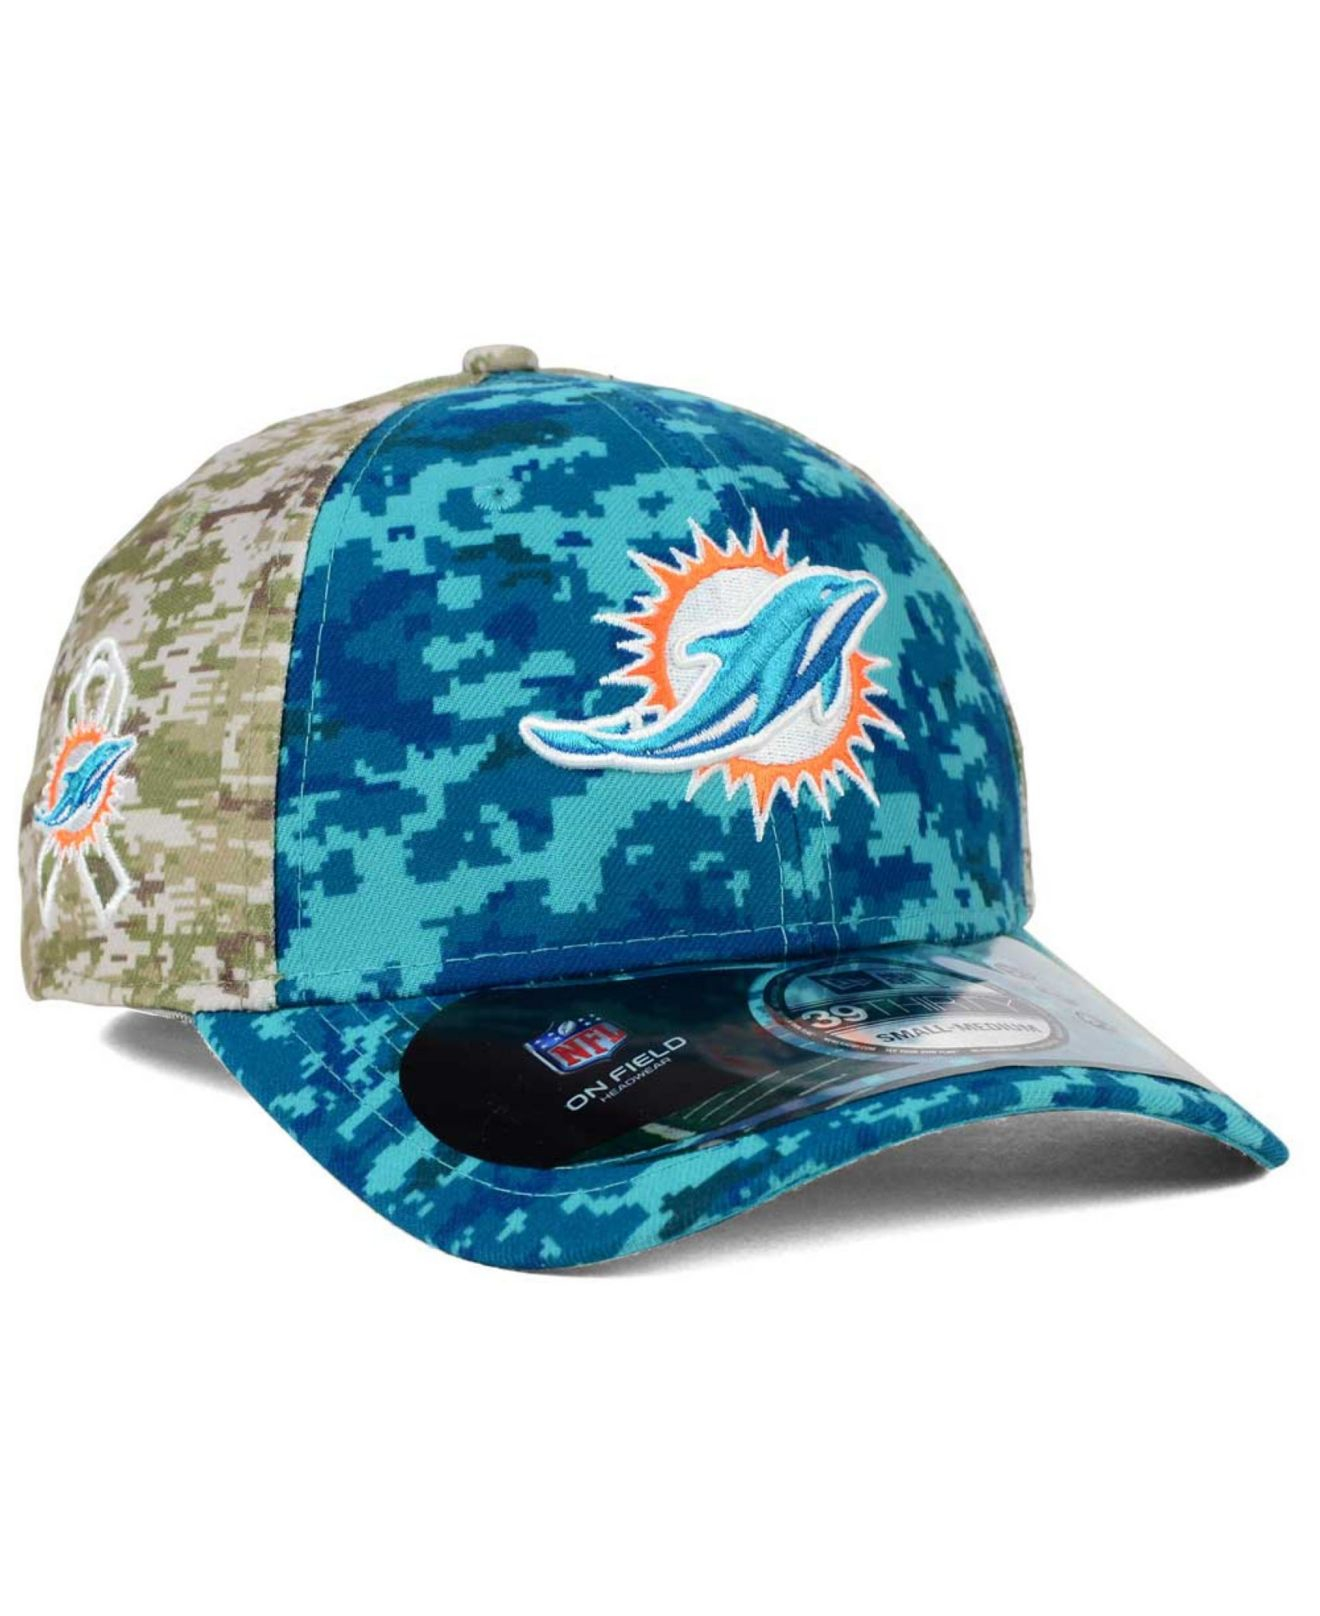 Lyst - KTZ Miami Dolphins Salute To Service 39thirty Cap in Blue for Men 03b64216c